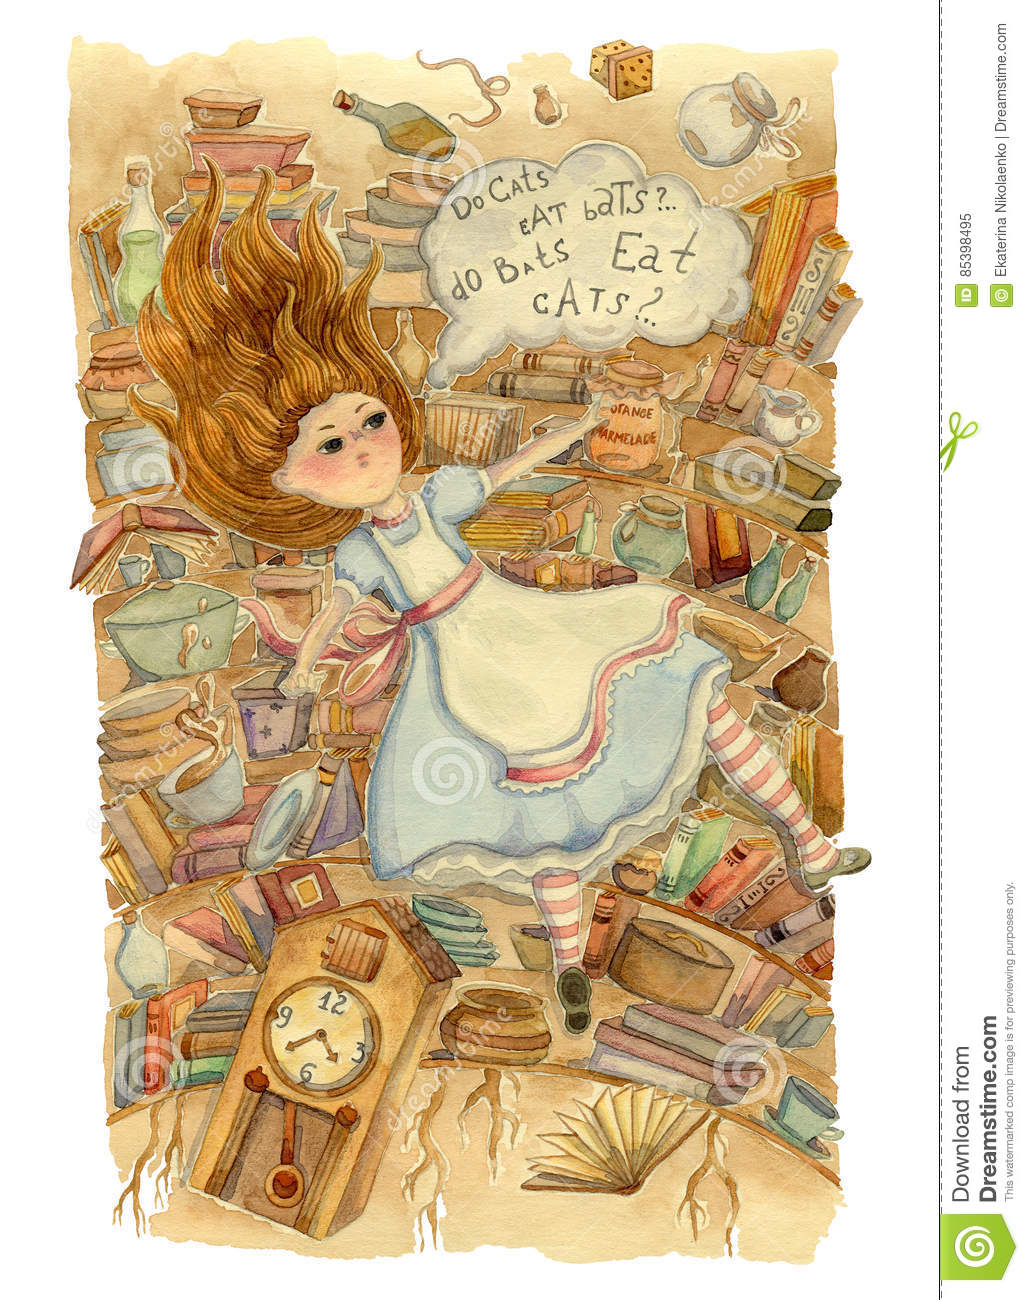 Alice in Wonderland. Alice is falling down into the rabbit hole.